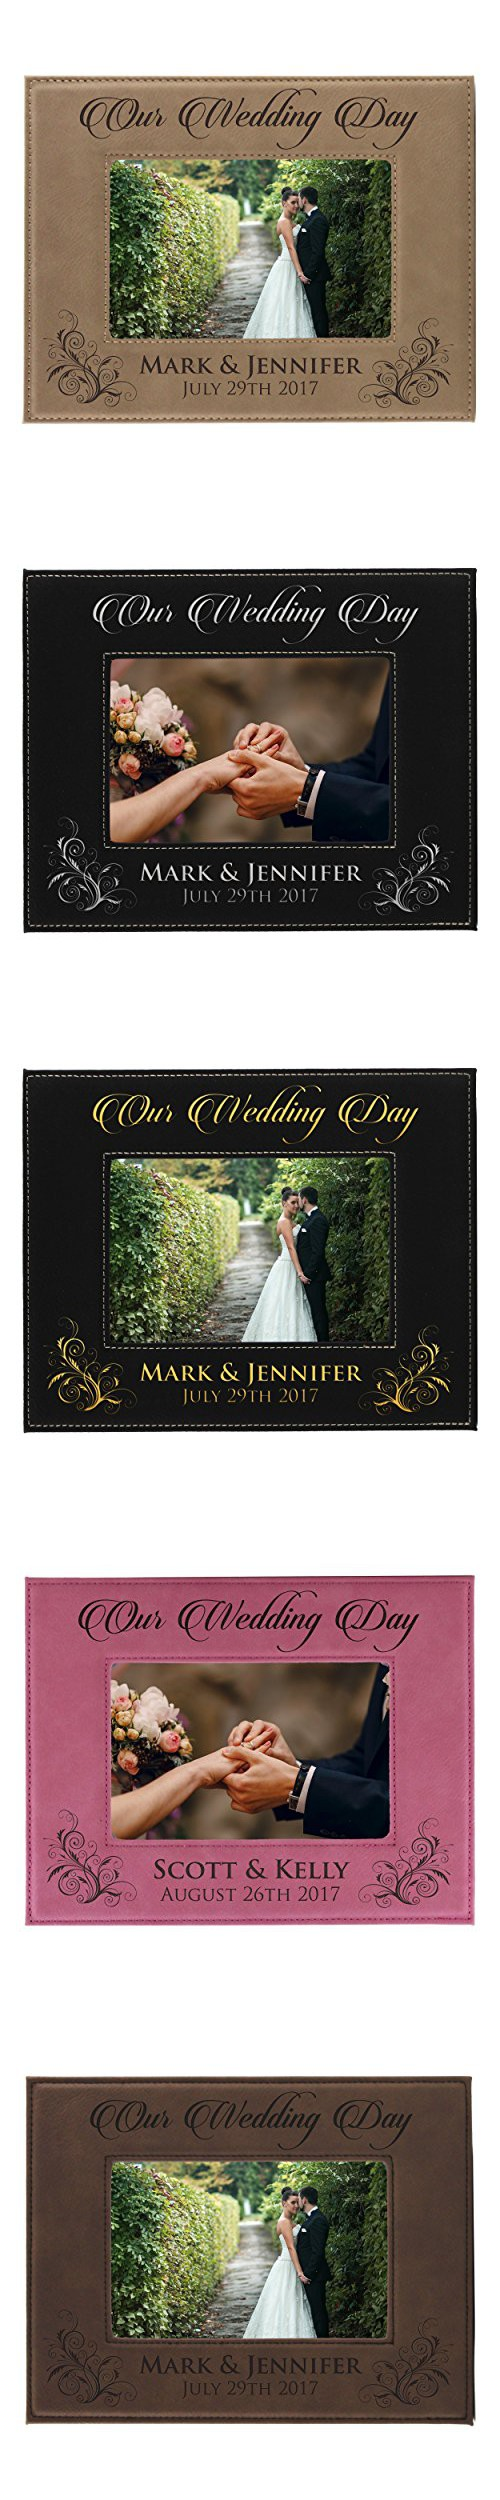 Personalized wedding gift picture frame custom engraved newlywed personalized wedding gift picture frame custom engraved newlywed leather photo gifts 5 x 7 jeuxipadfo Image collections